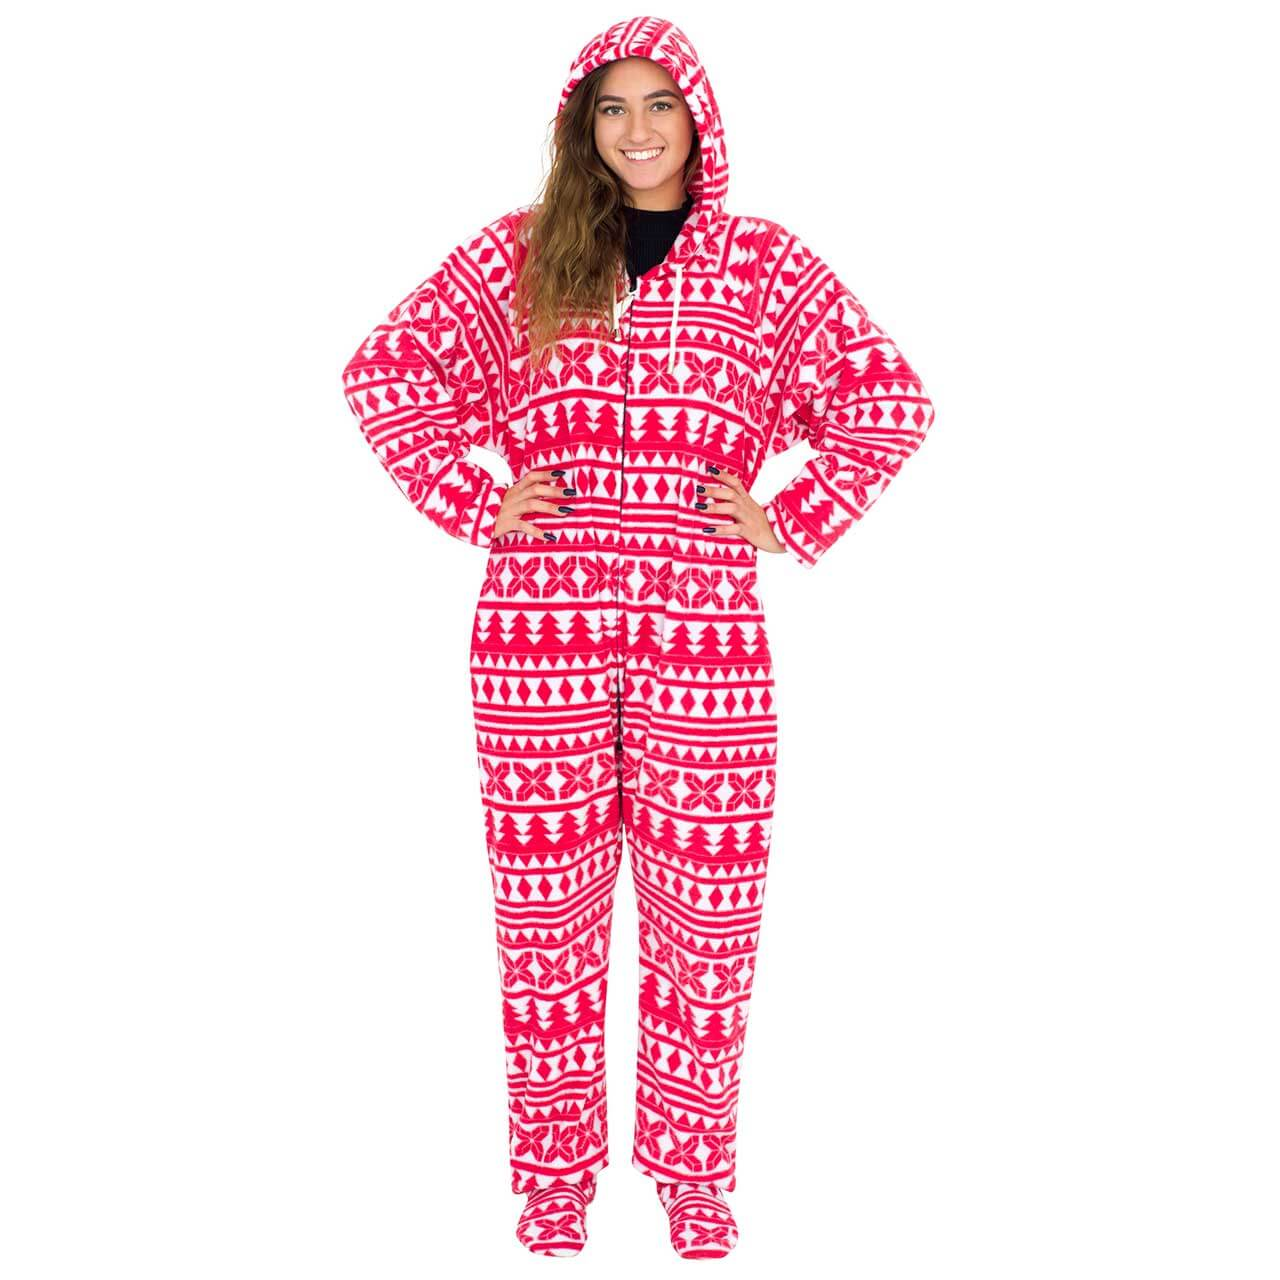 Red And White Ugly Christmas Pajama Suit With Hood Gifts